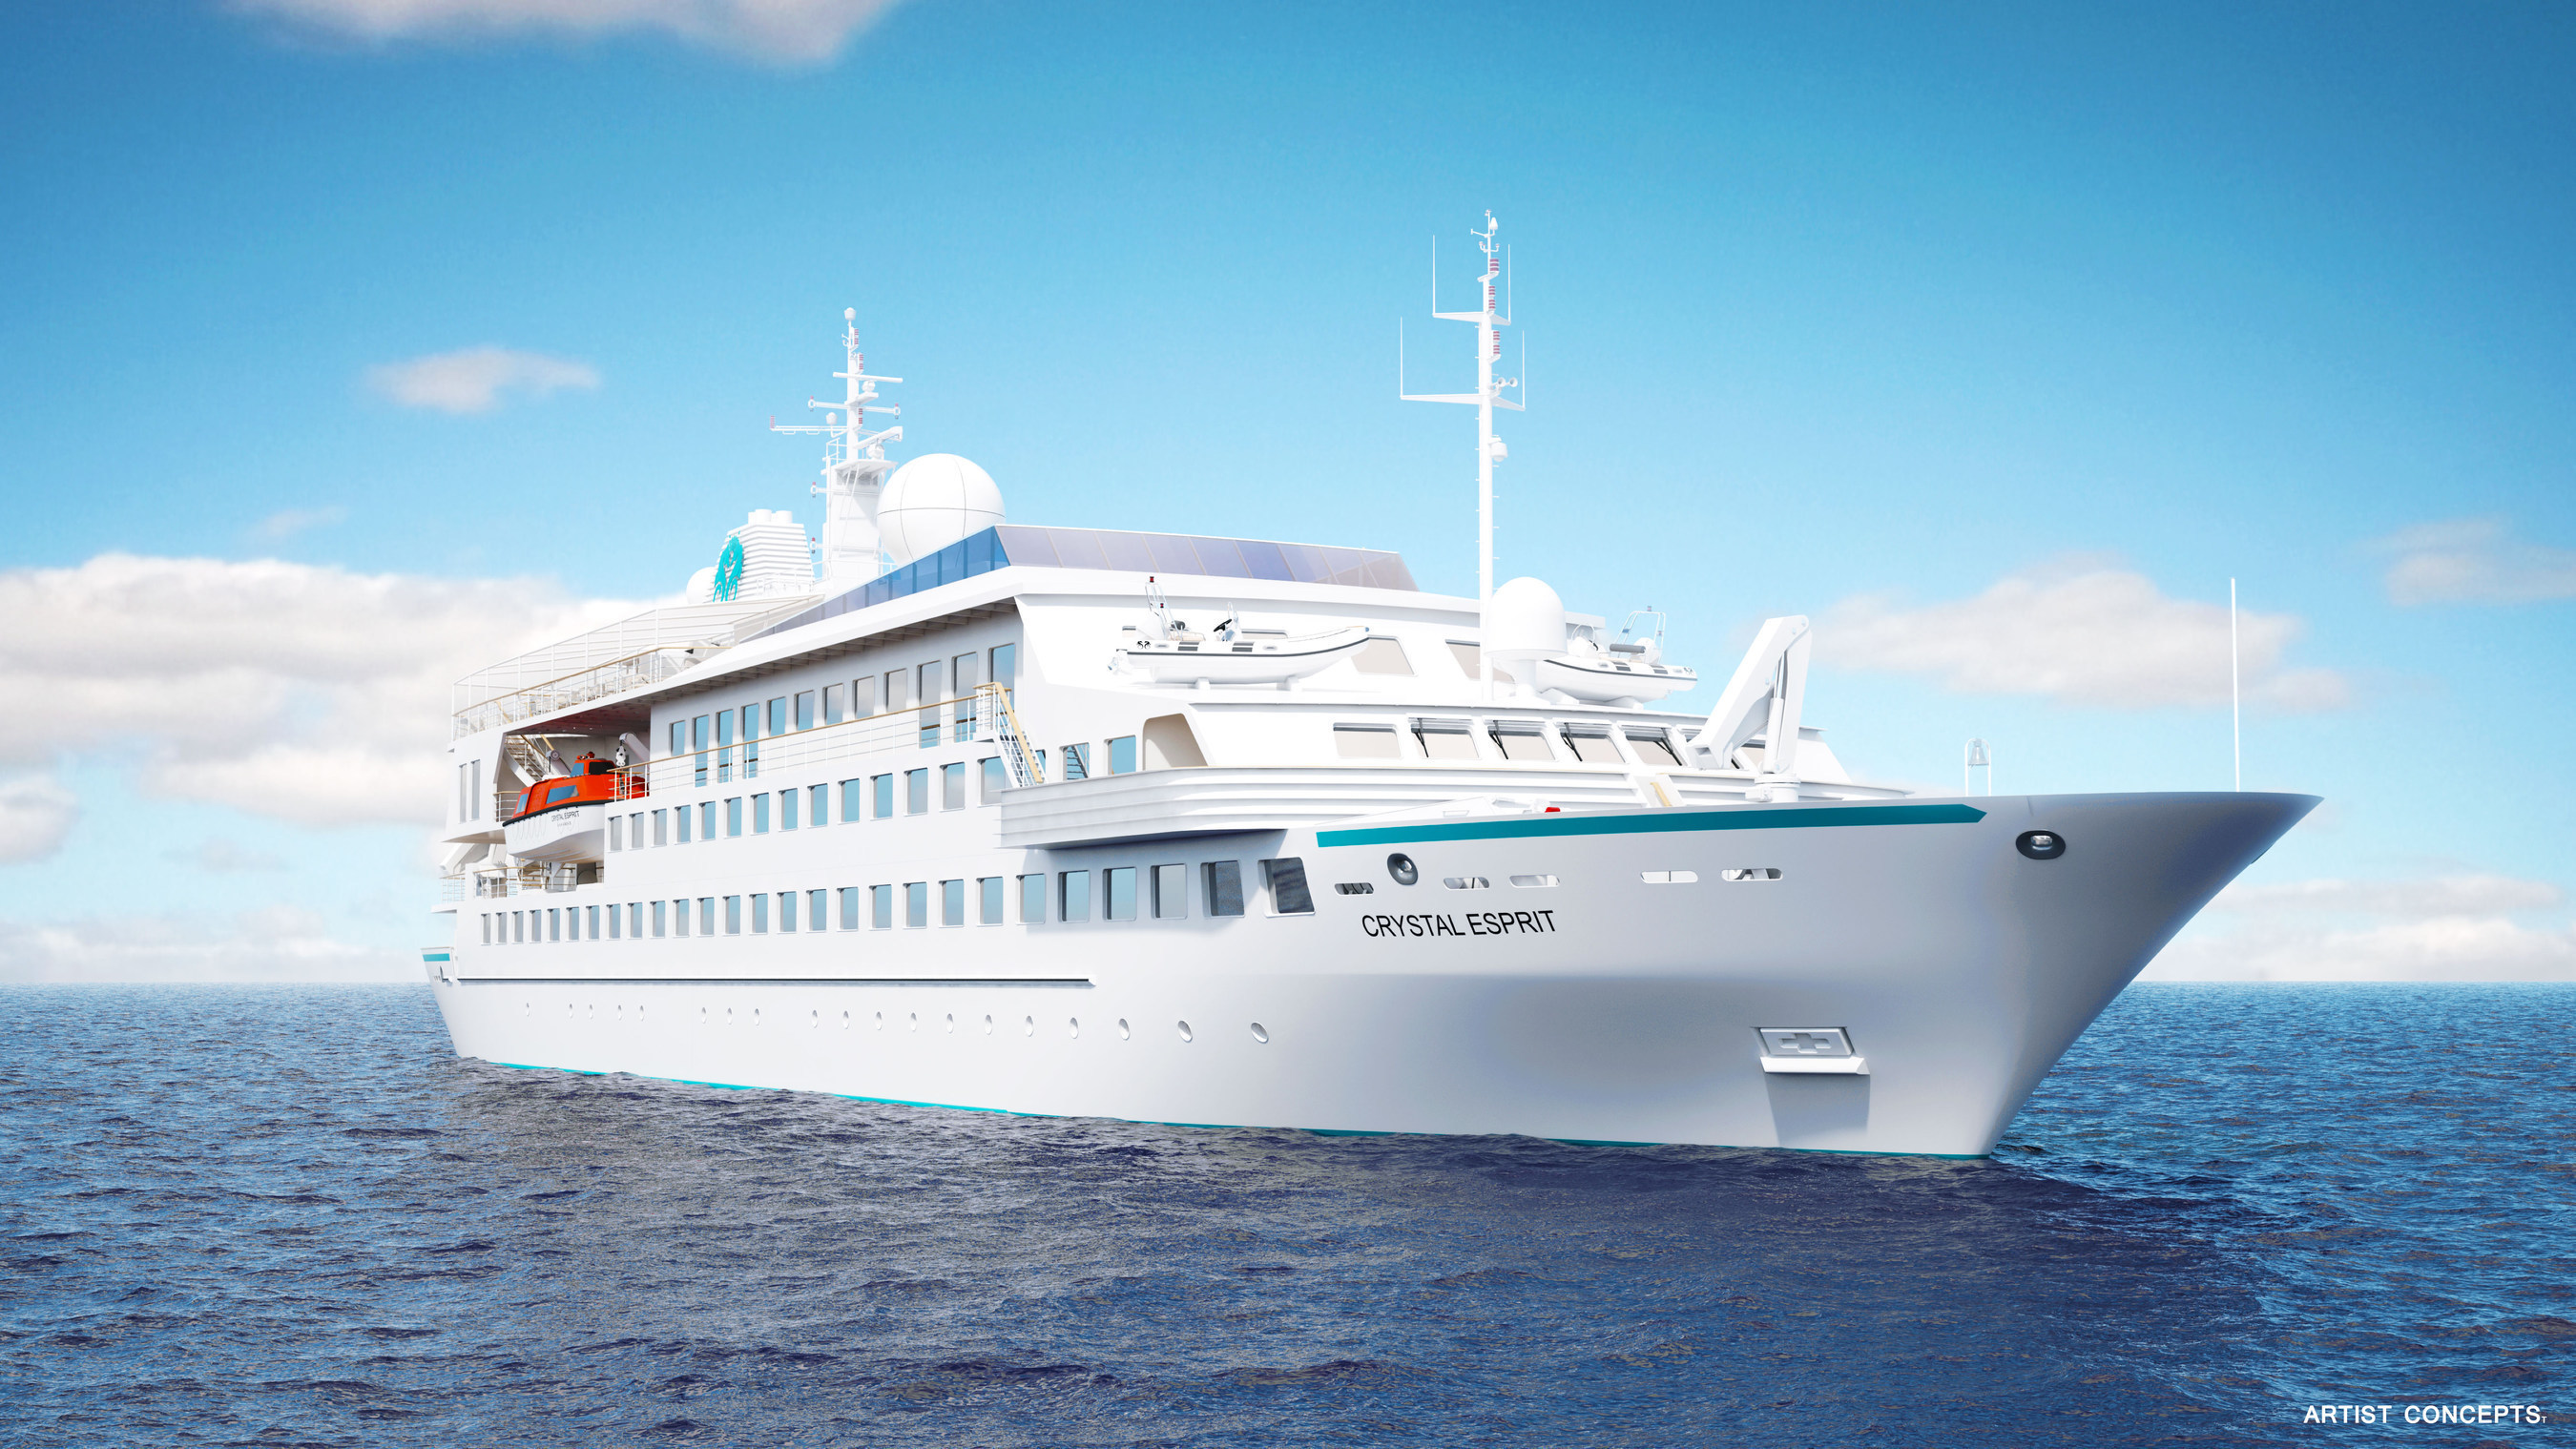 Crystal Esprit will embark on its maiden voyage December 23, 2015, as the first expansion of the Crystal Cruises fleet. Sailing regional, warm-water itineraries of seven days, the all-inclusive yacht will offer intimate, exclusive and immersive experiences with a boutique ambiance and thrilling adventures on water and ashore.